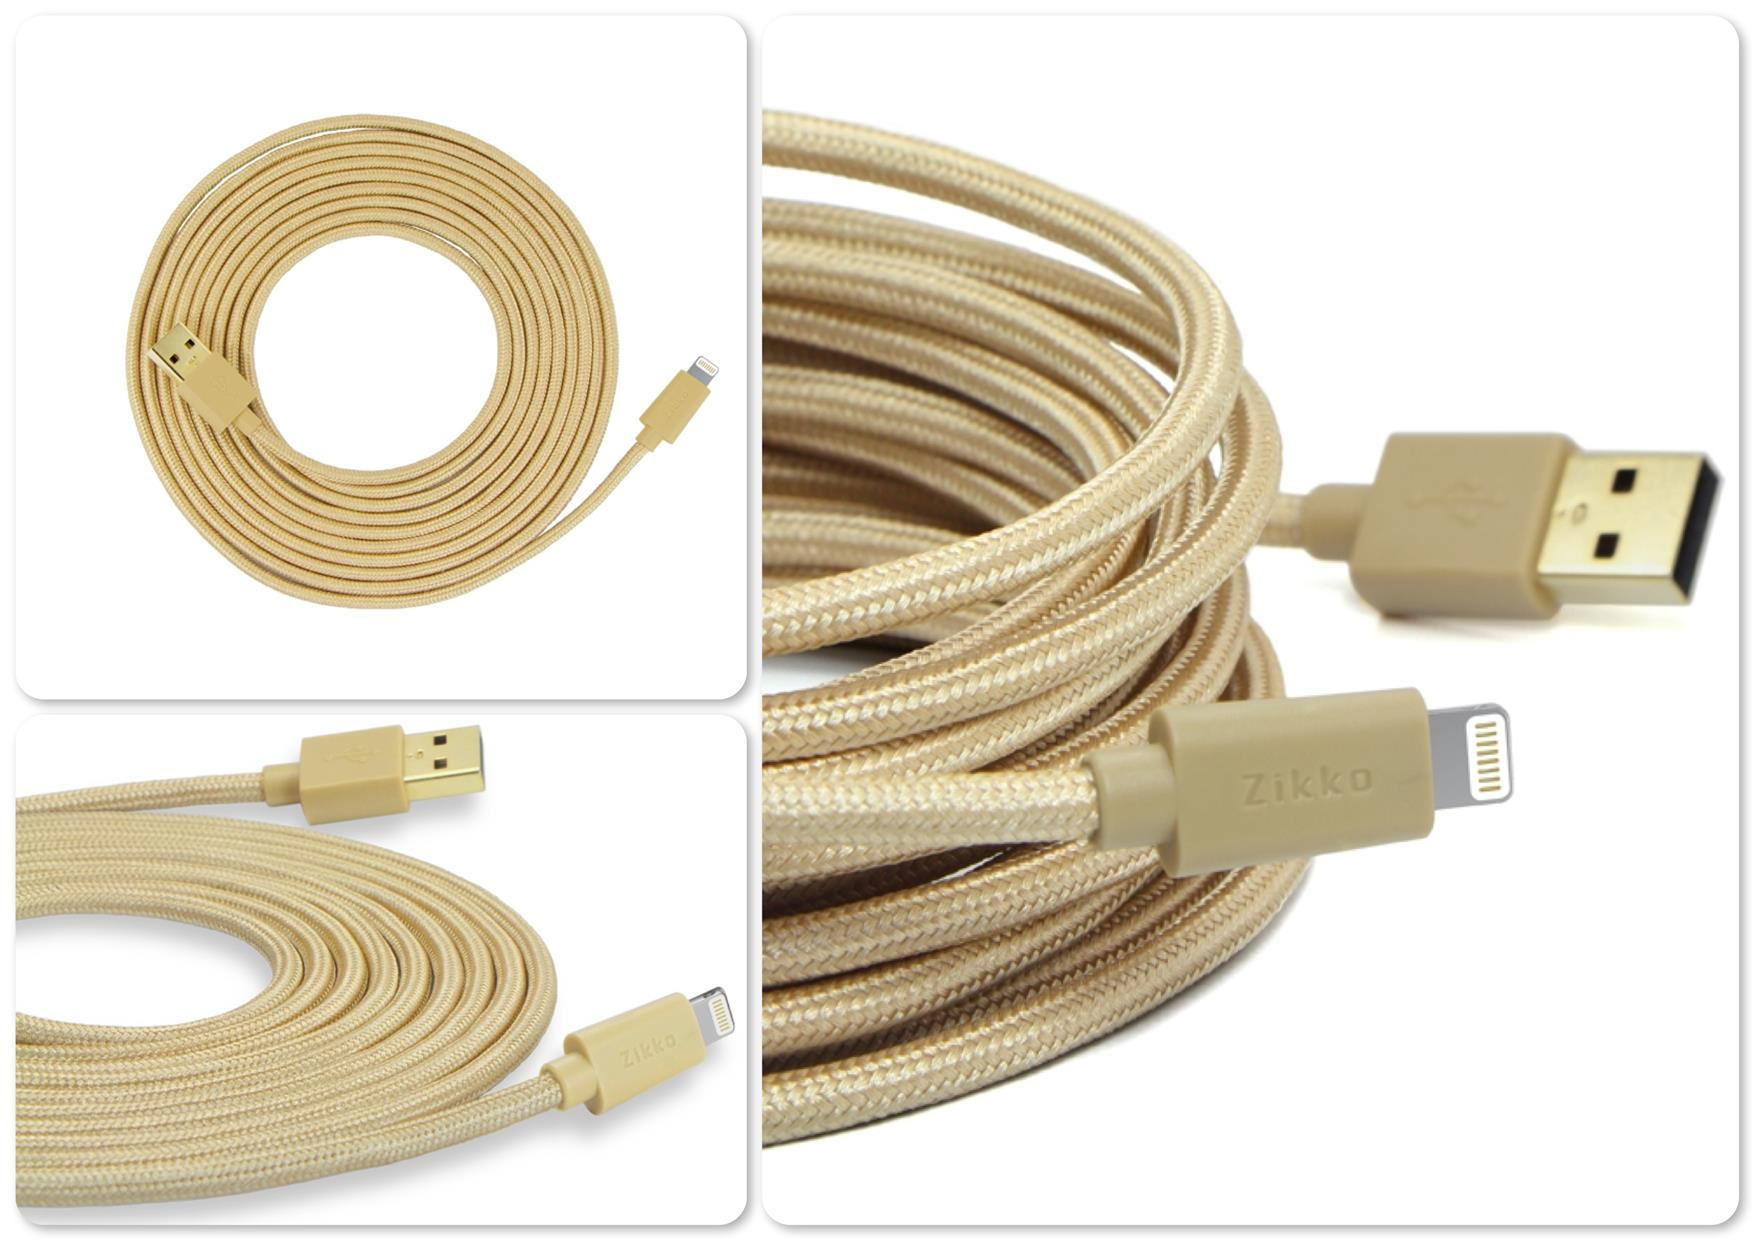 Bdotcom = Zikko 3 Metre Woven type Lighting Sync & Charge Cable = Orig..